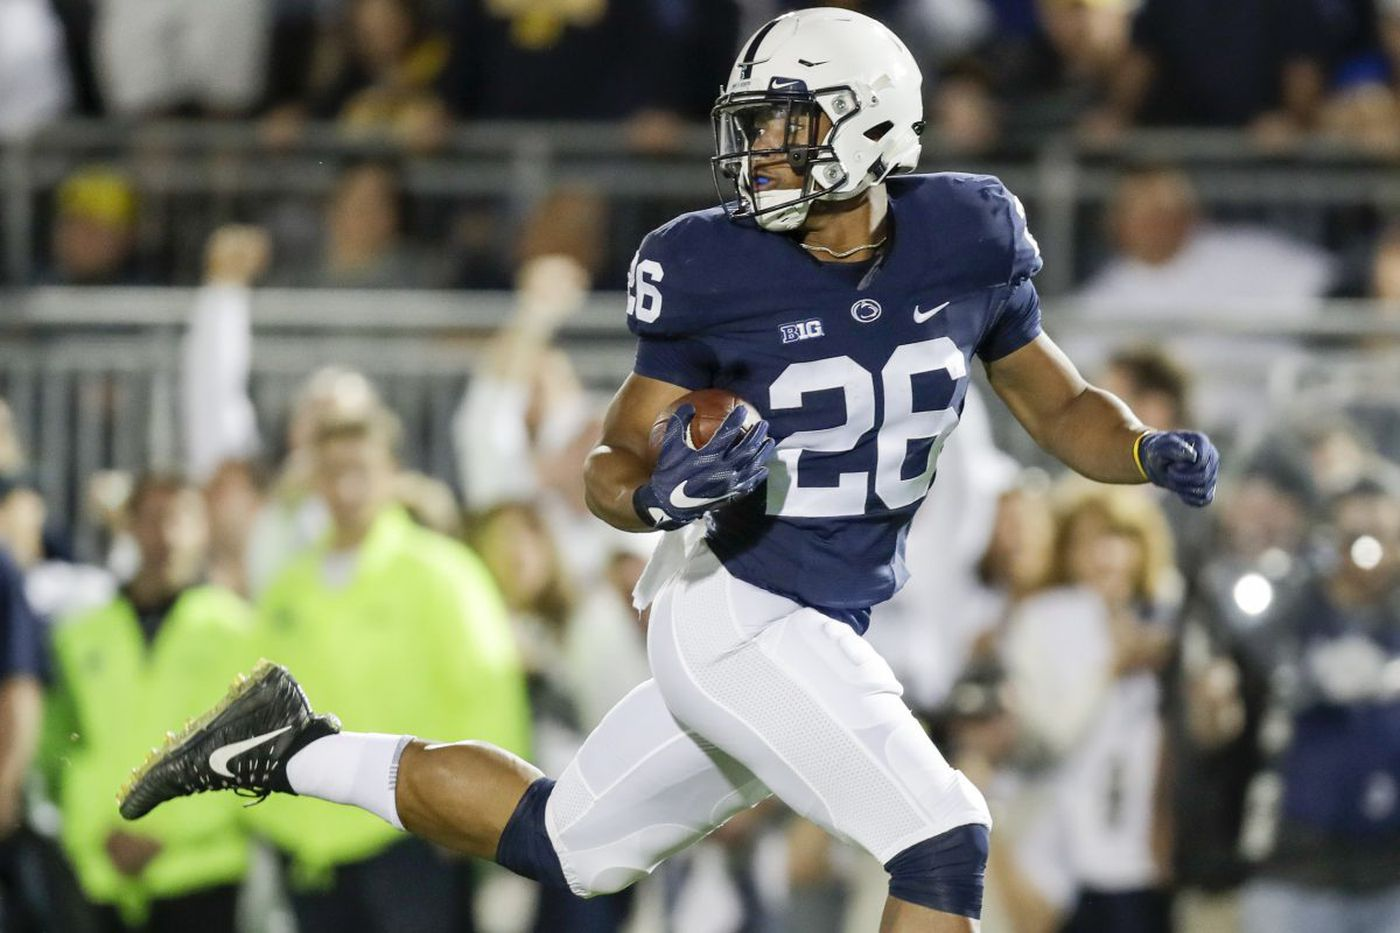 Gameday primer: Penn State has something else to prove to Ohio State on Saturday